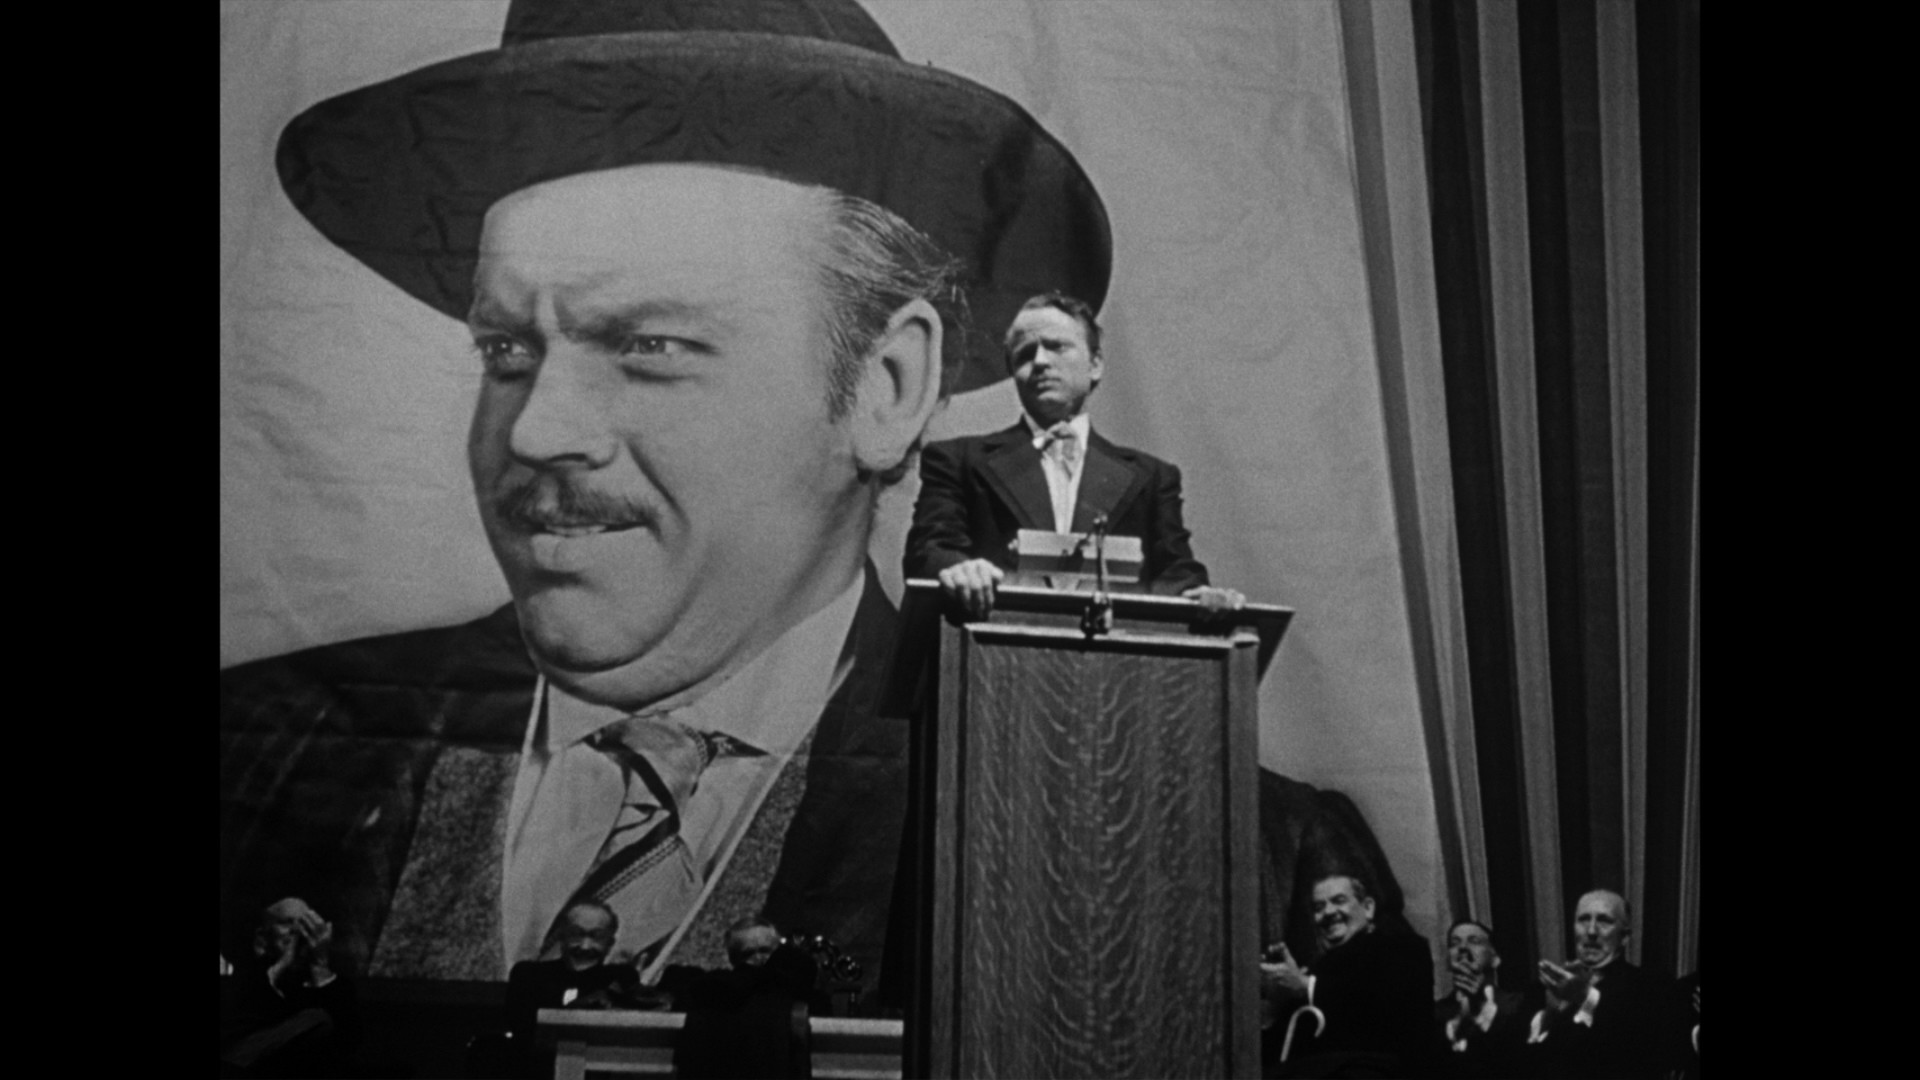 1920x1080 Citizen Kane picture: large citizen kane blu ray 7 jpg ...